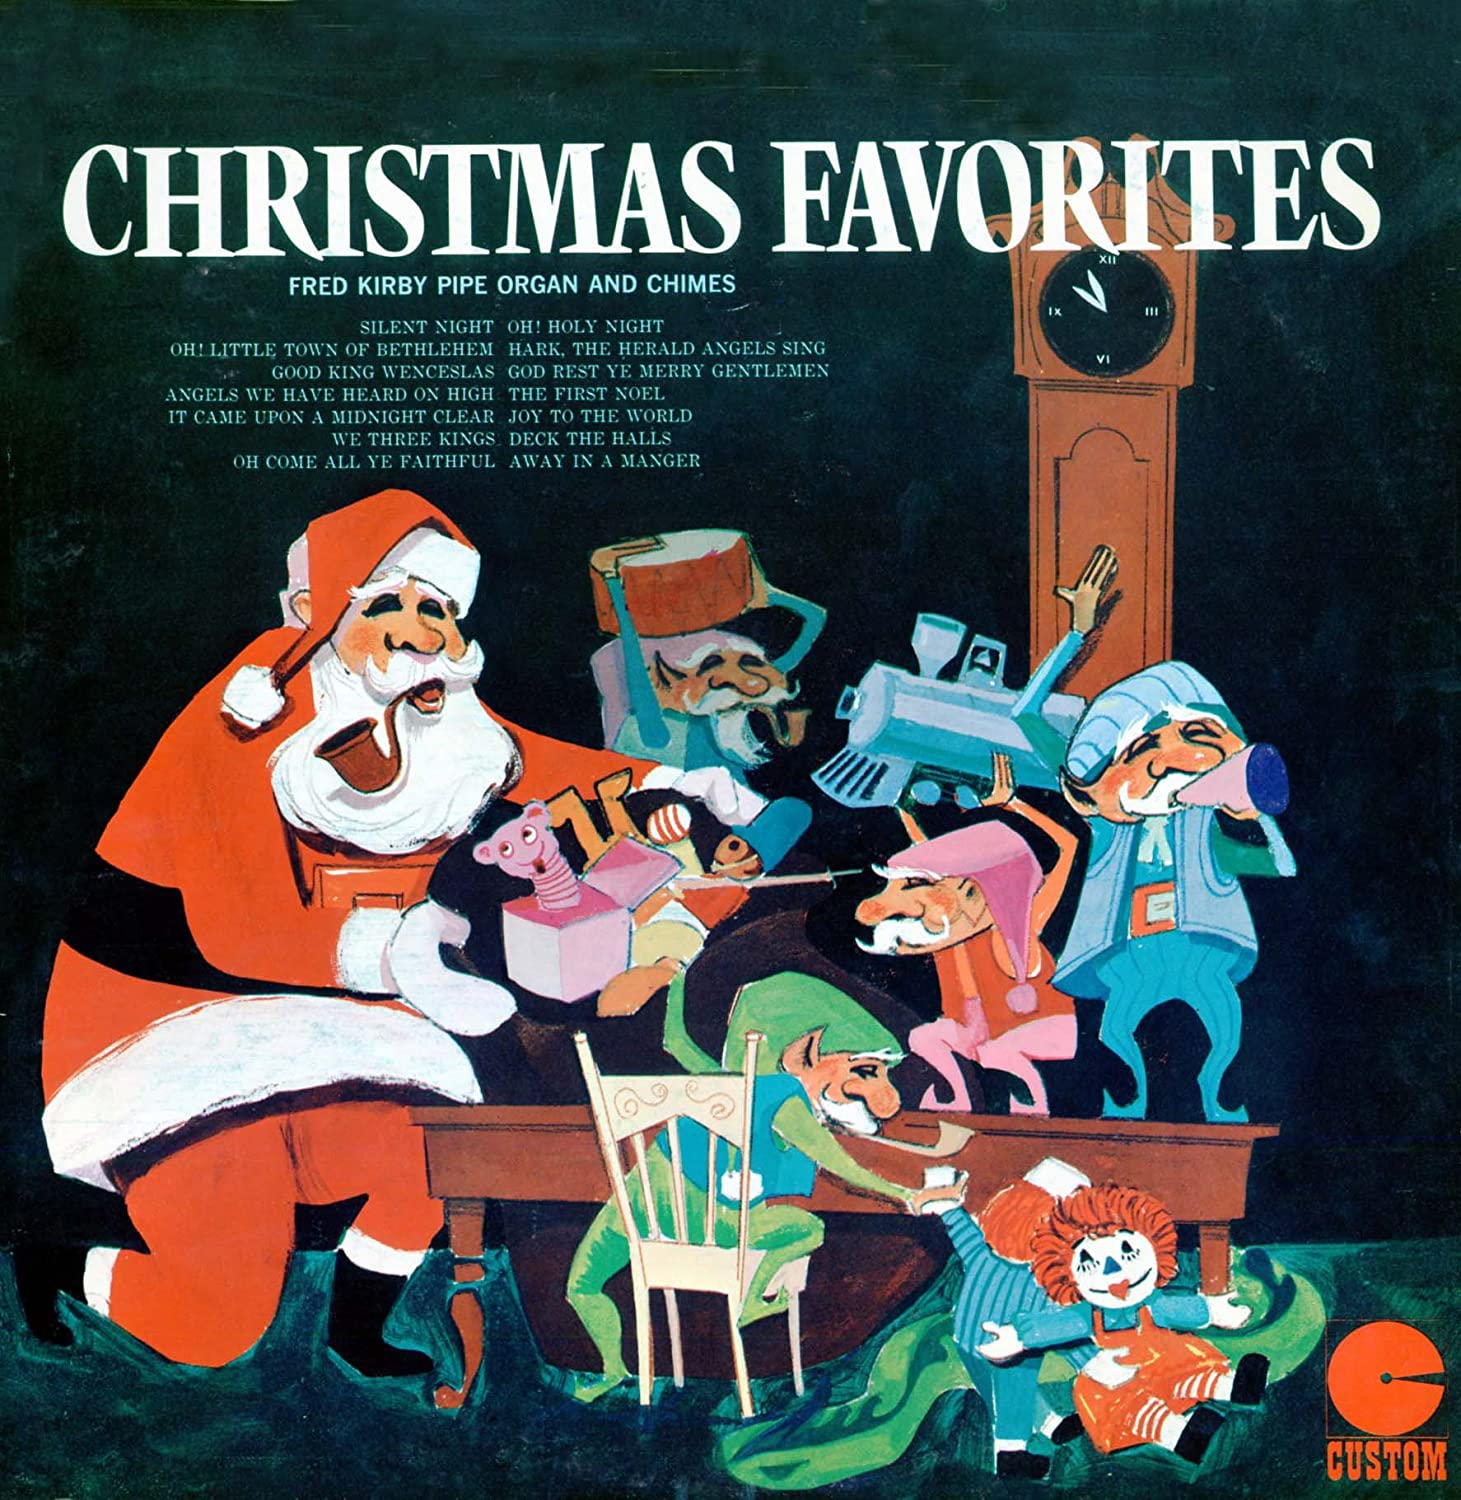 Fred Kirby - Audio CD. Christmas Favorites. Fred Kirby Pipe Organ ...